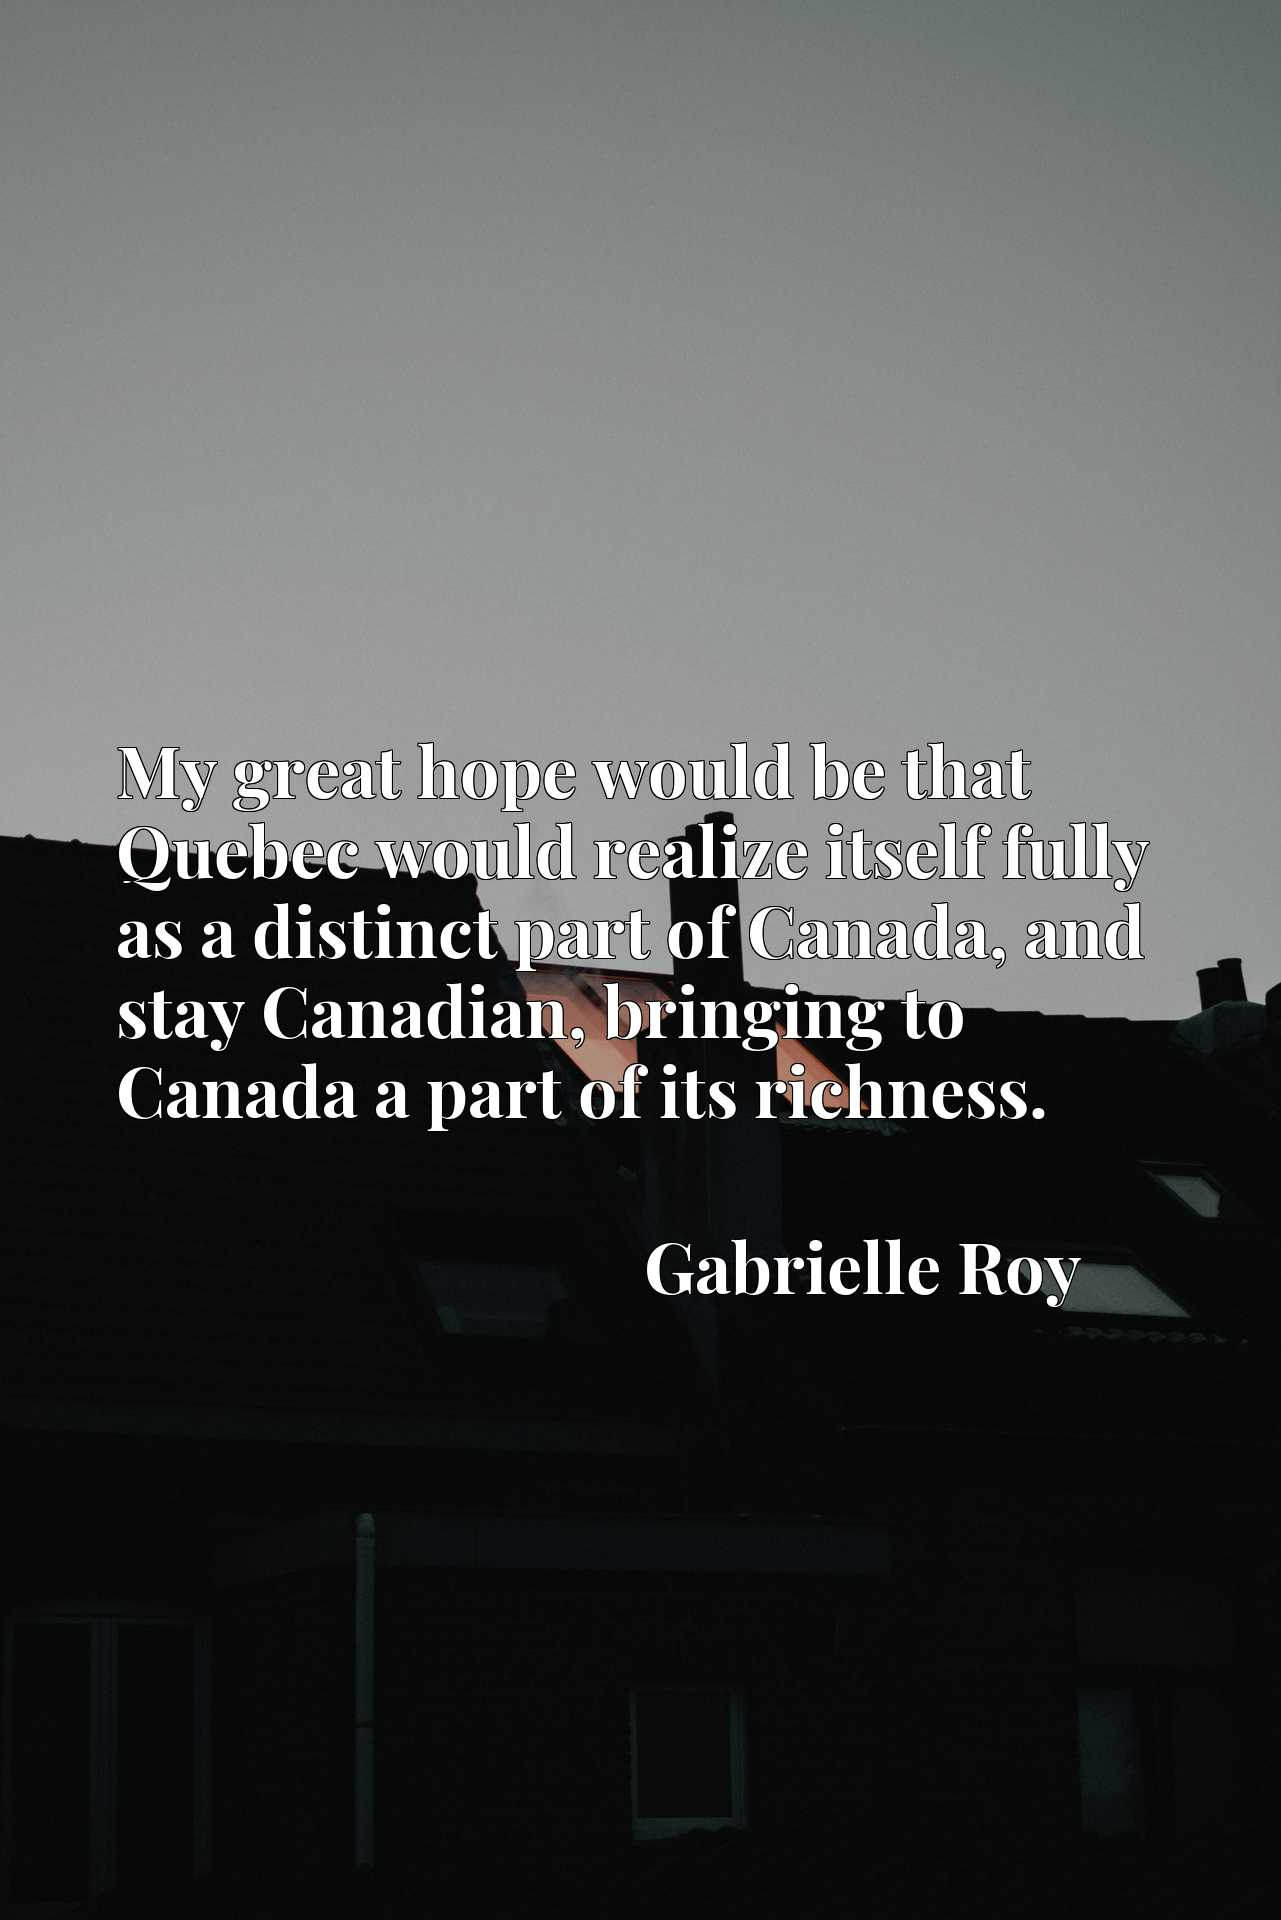 My great hope would be that Quebec would realize itself fully as a distinct part of Canada, and stay Canadian, bringing to Canada a part of its richness.